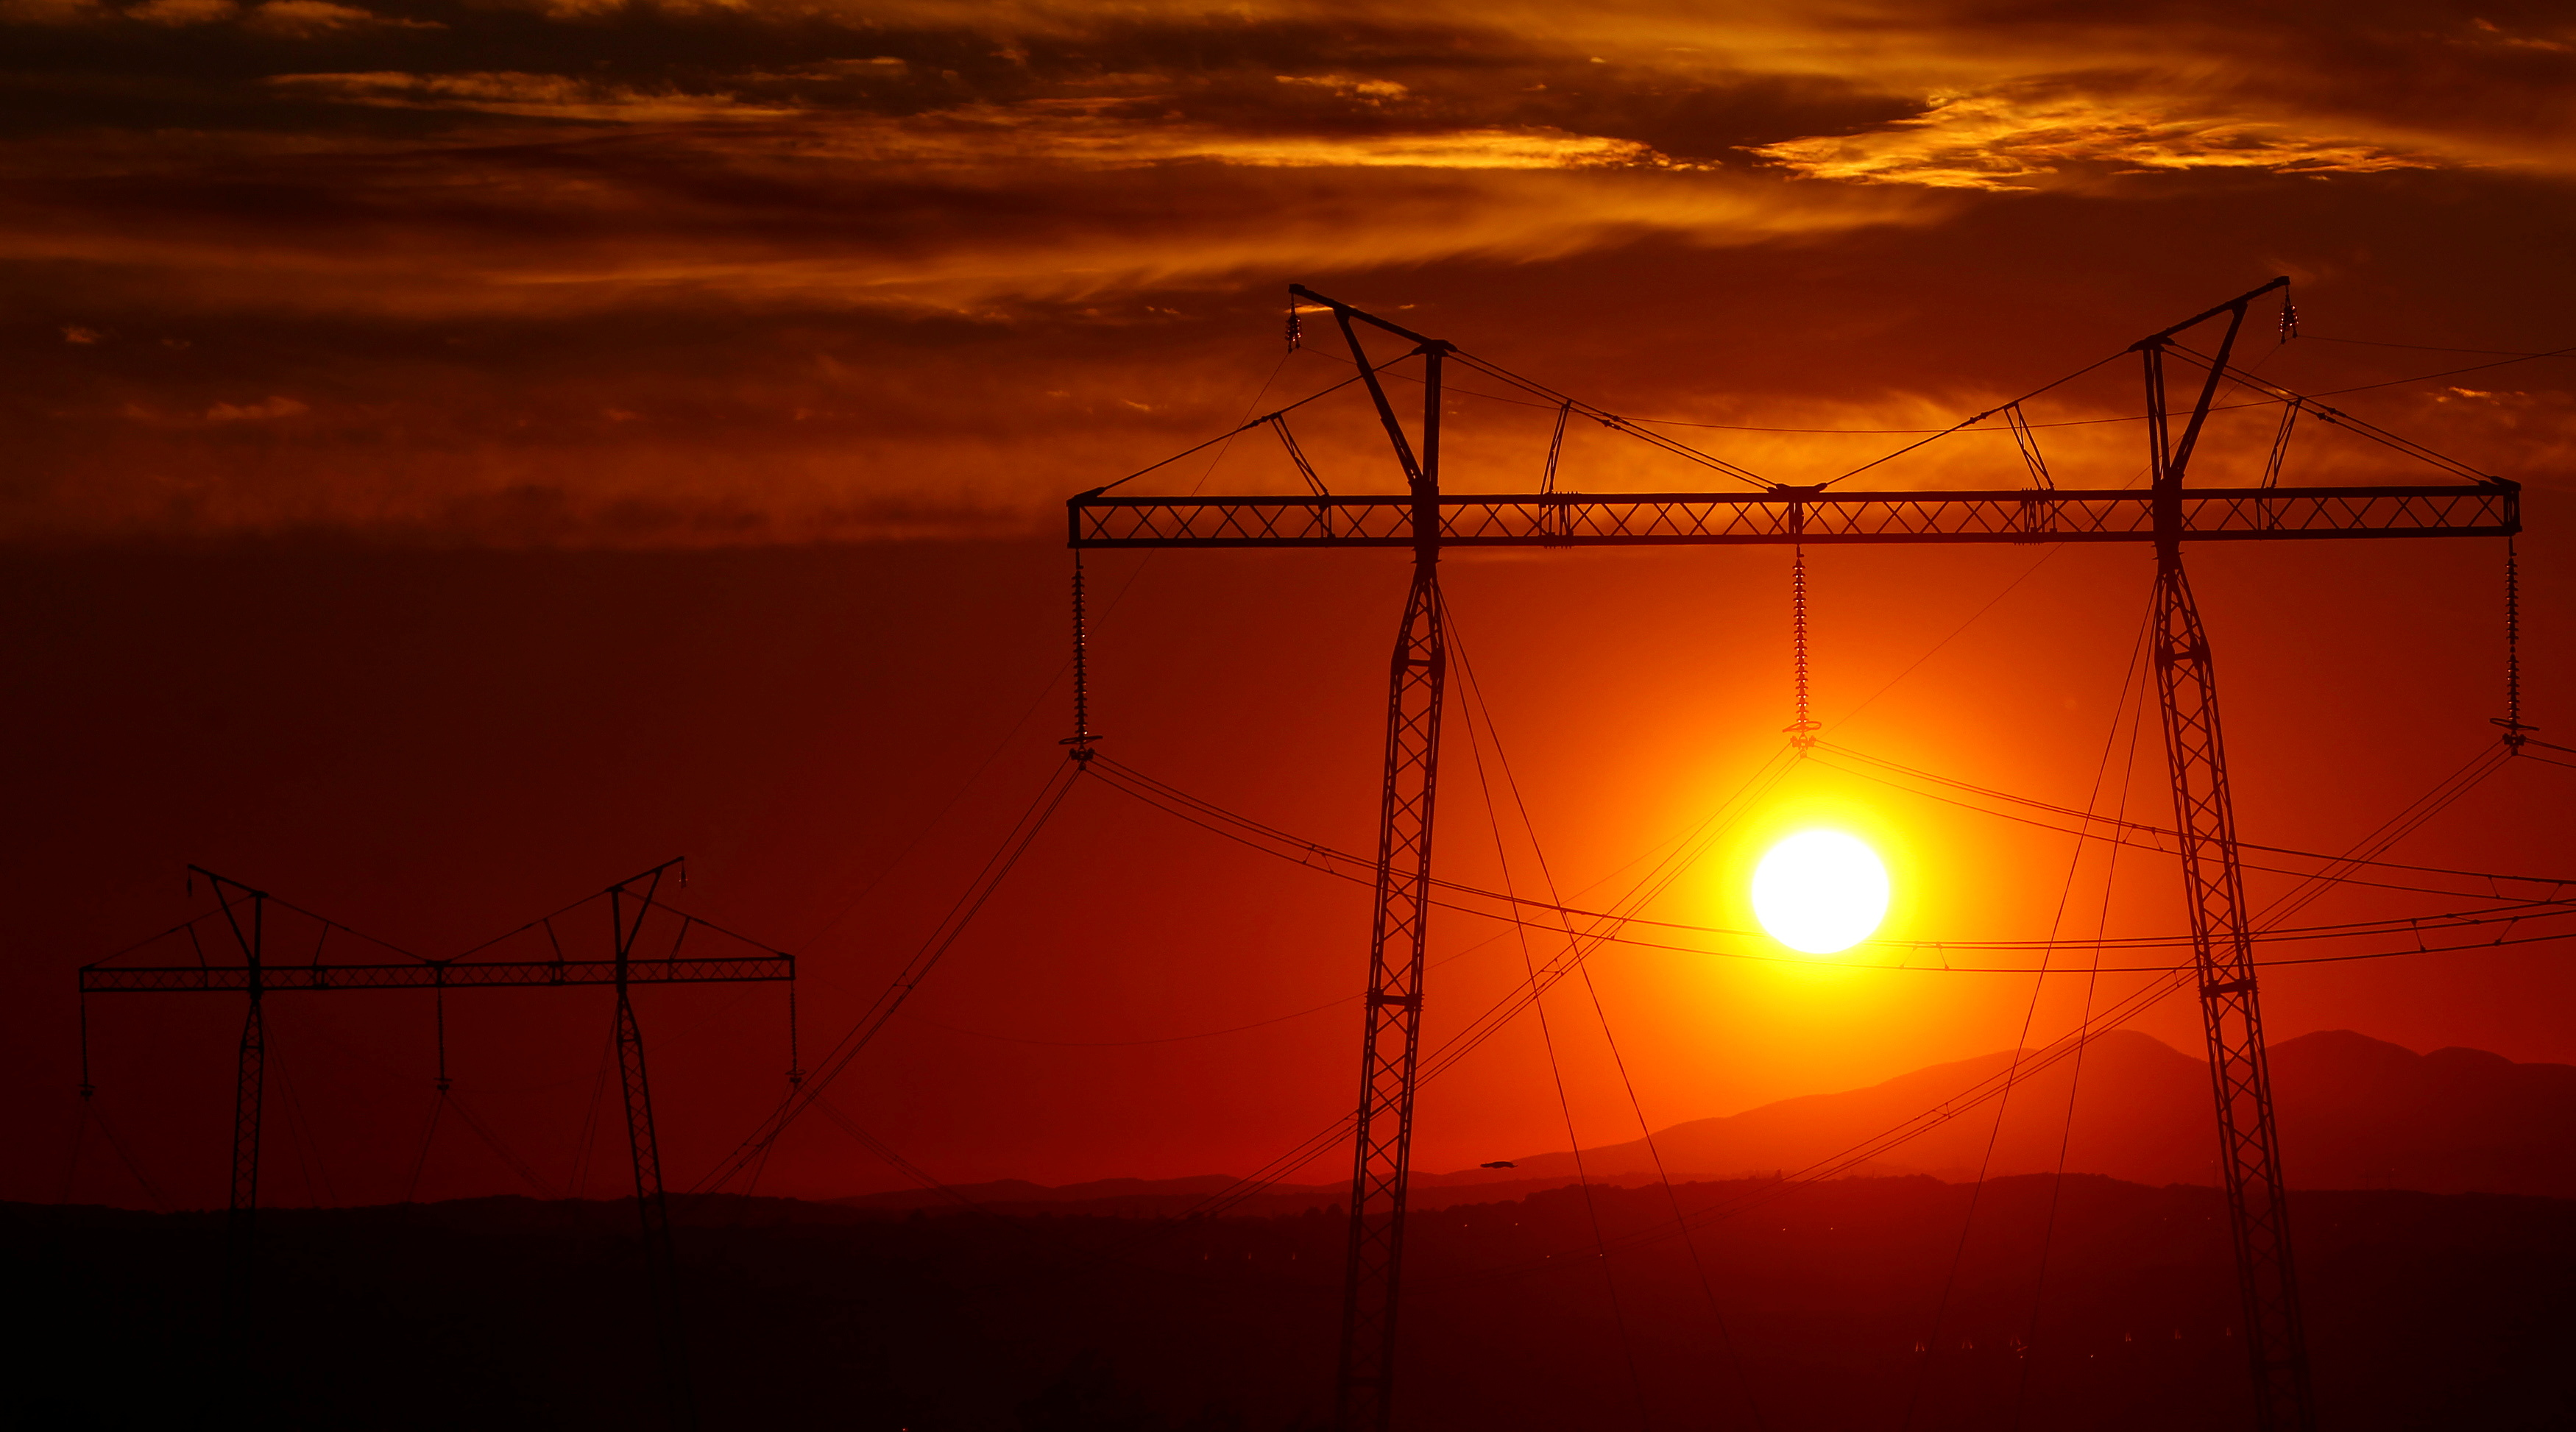 The sun sets behind electric power transmission lines near the town of Sachkhere, some 200 km (124 miles) north-west of Tbilisi, September 13, 2013. REUTERS/David Mdzinarishvili/File Photo